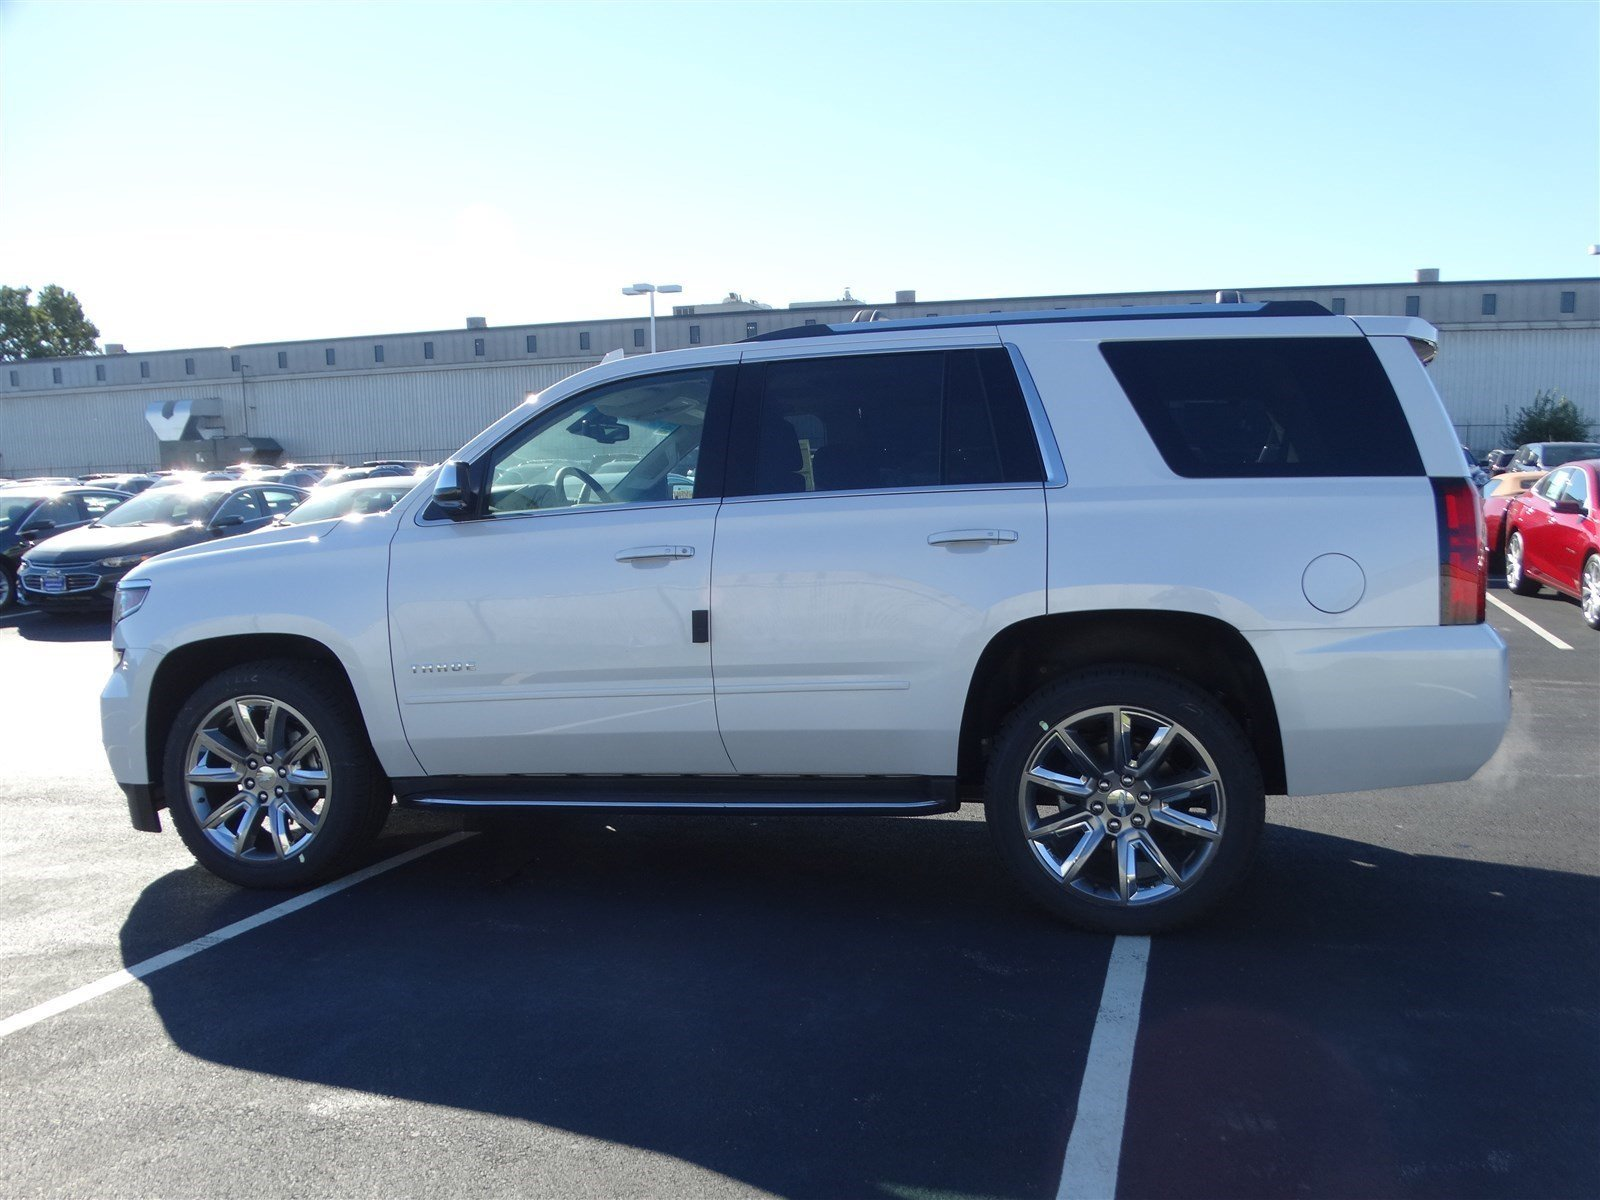 New 2017 Chevrolet Tahoe Premier ... 4WD, NAVIGATION, SUNROOF, 22 INCH ...